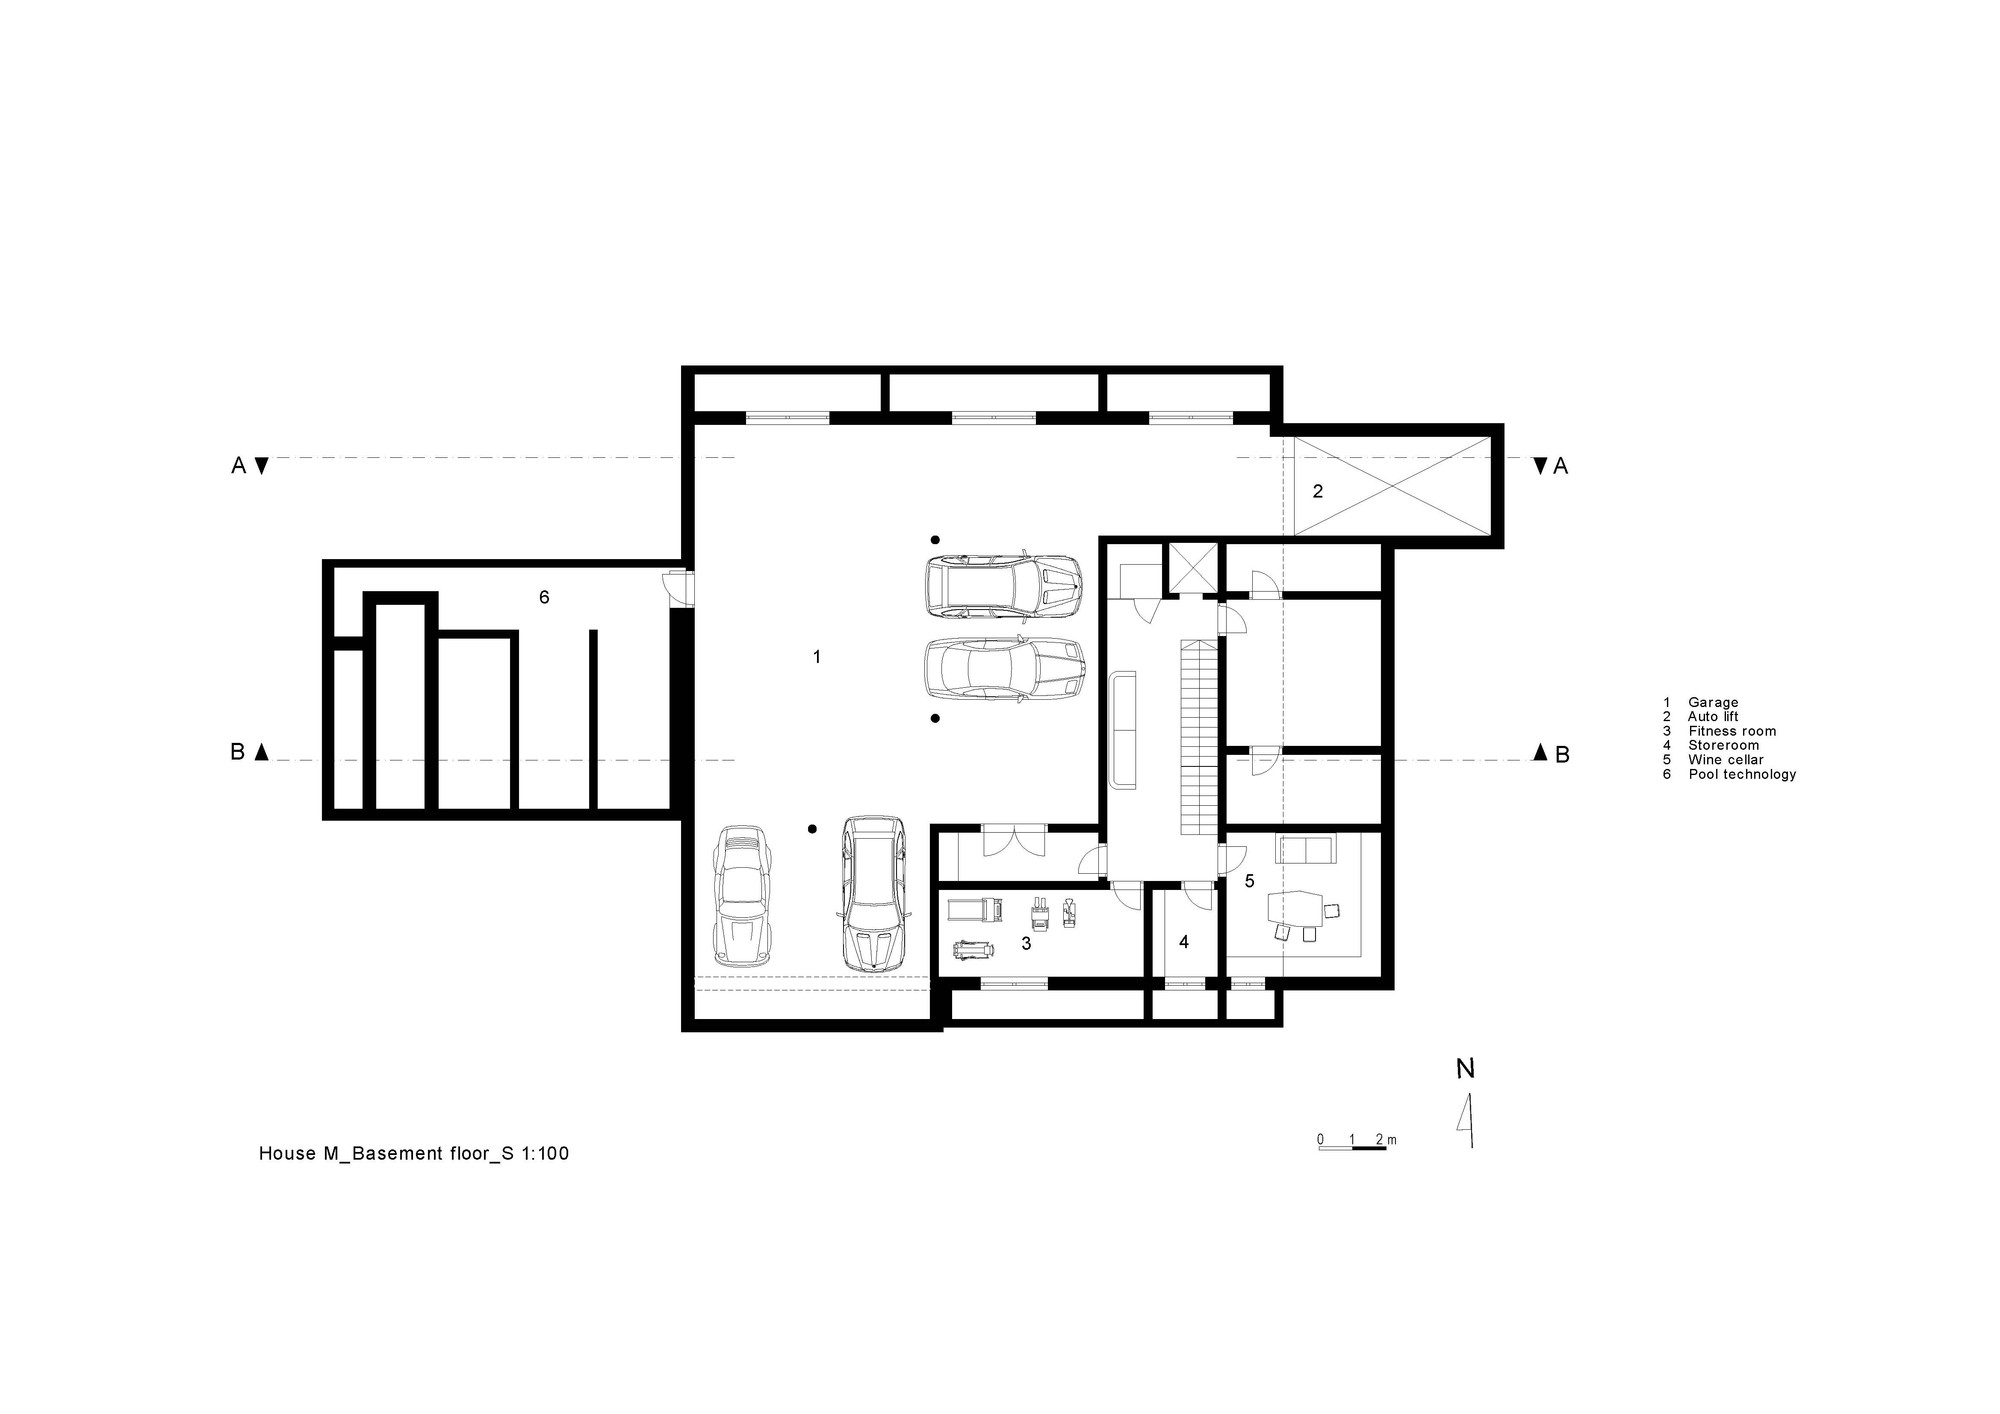 Gallery of house m monovolume architecture design 42 for Floor plans architecture